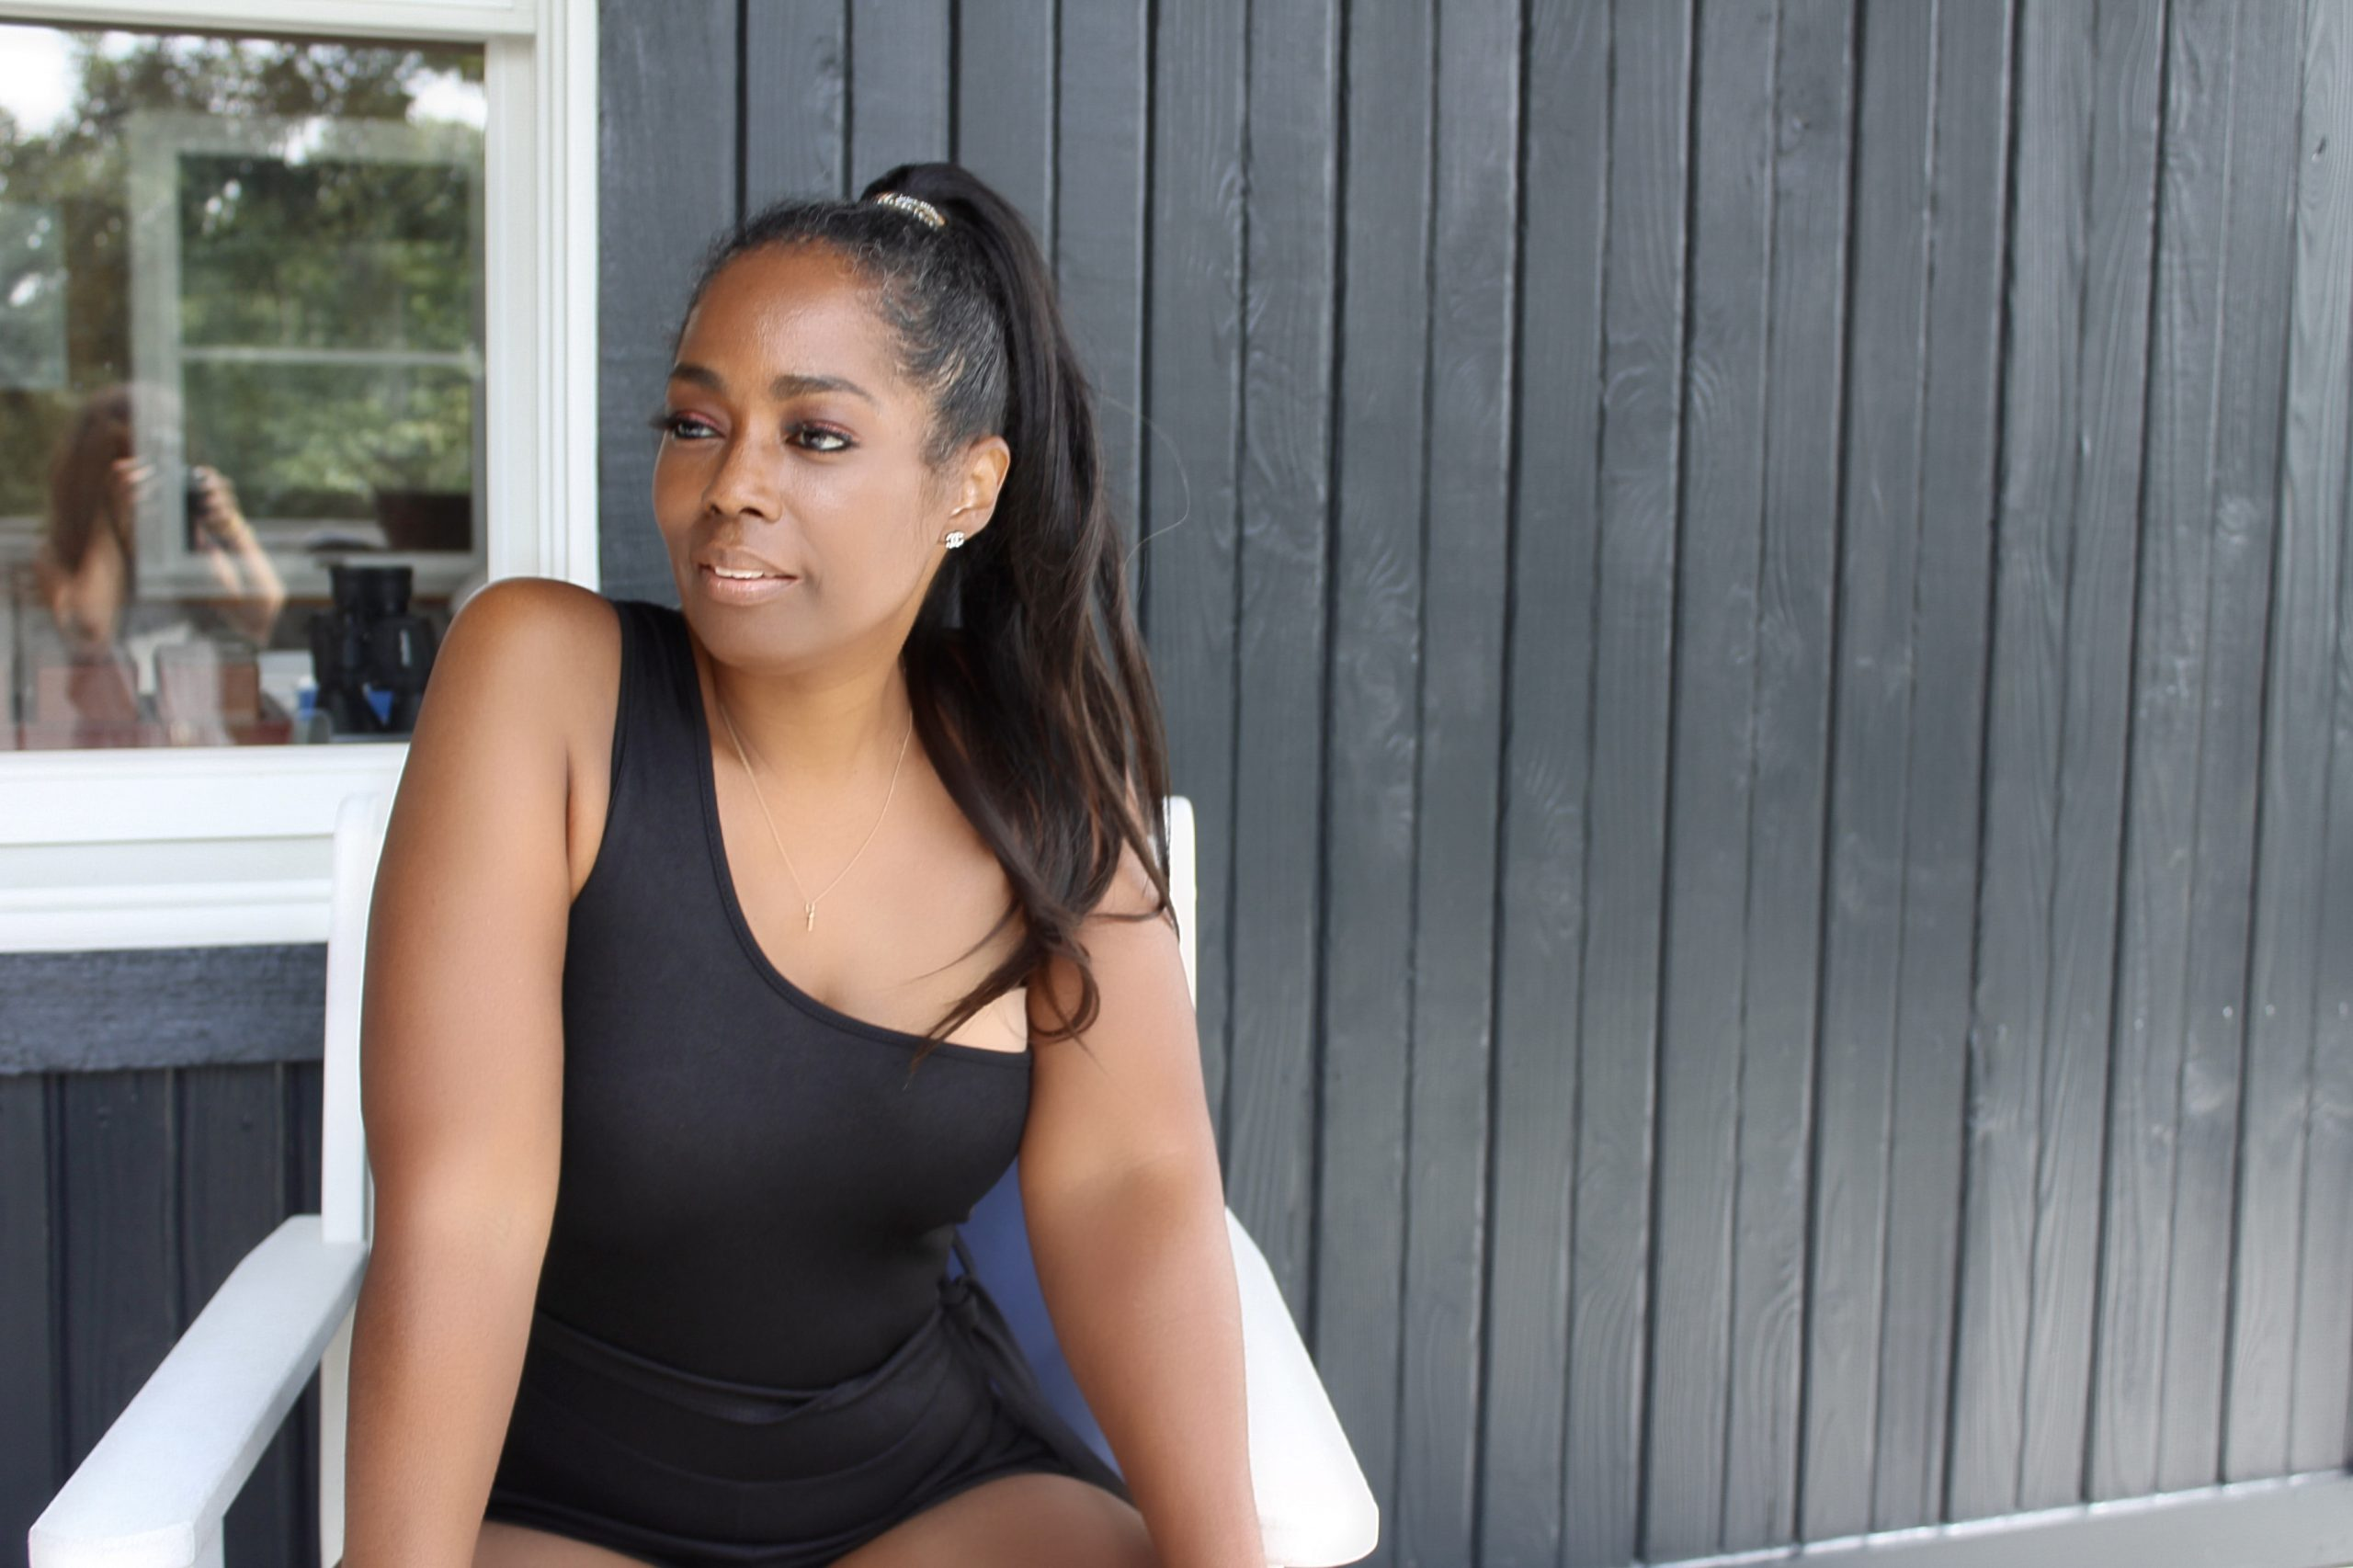 My Style: One Shoulder Playsuit